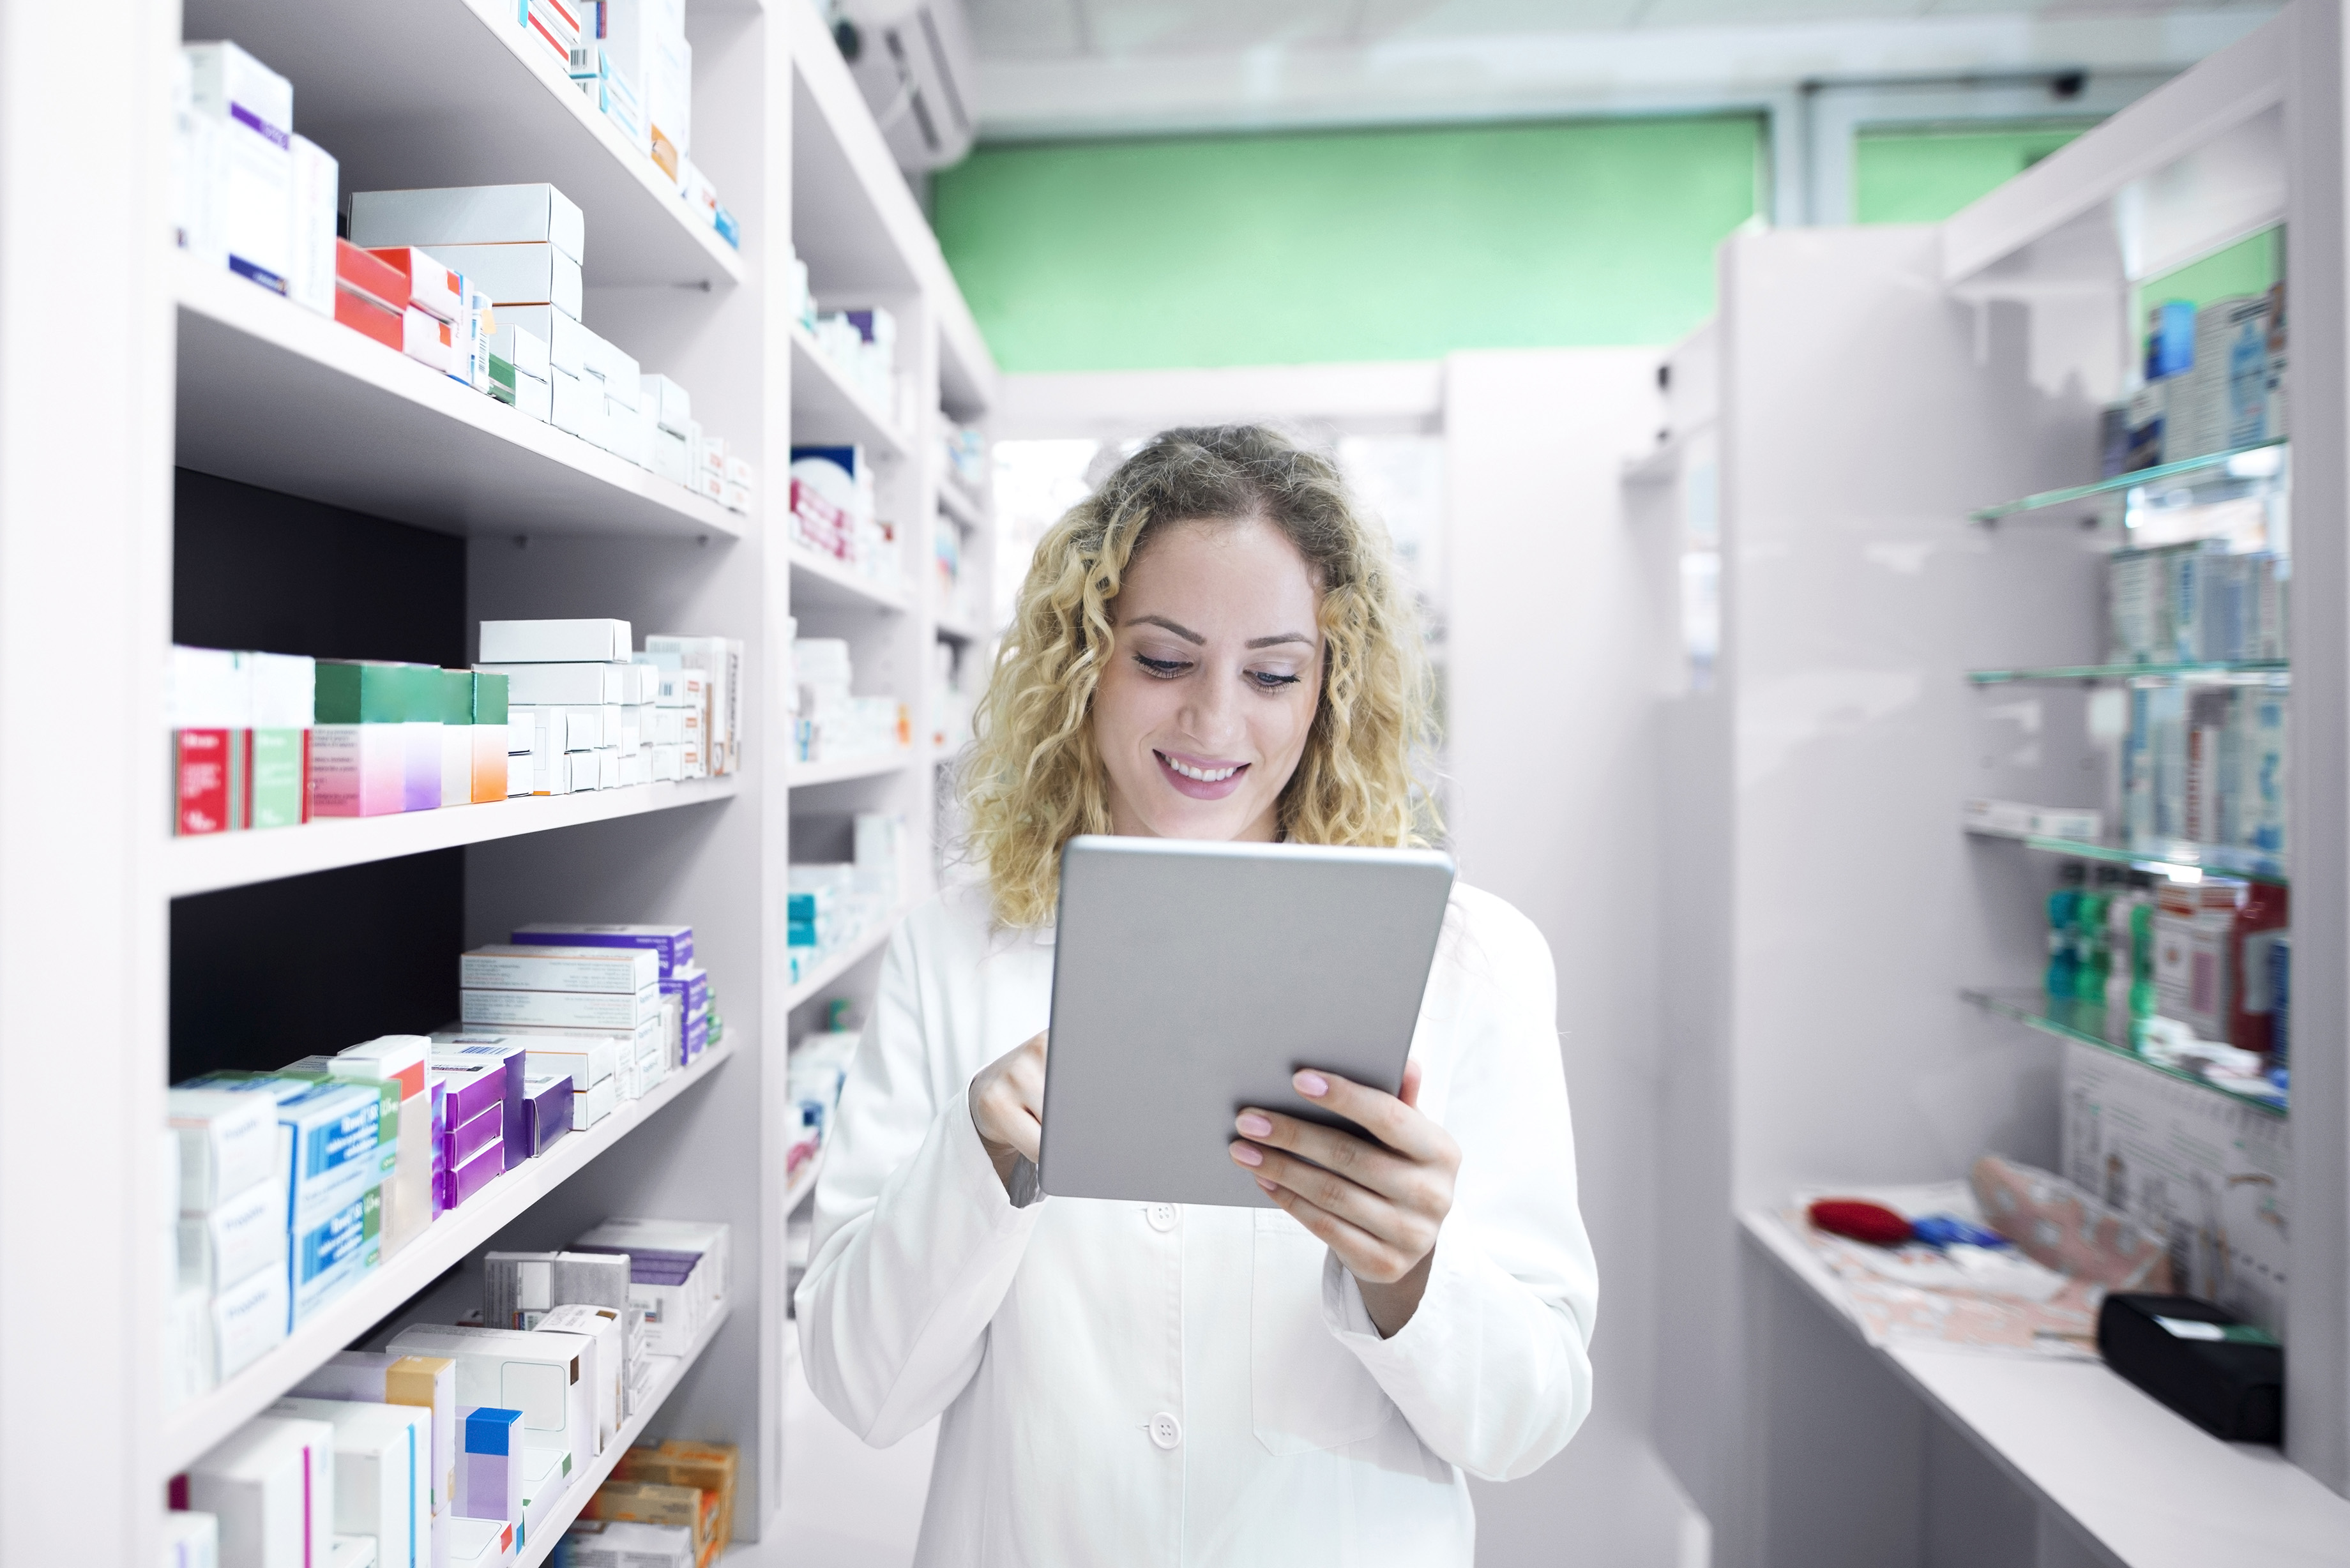 Pharmacist in a pharmacy doing inventory